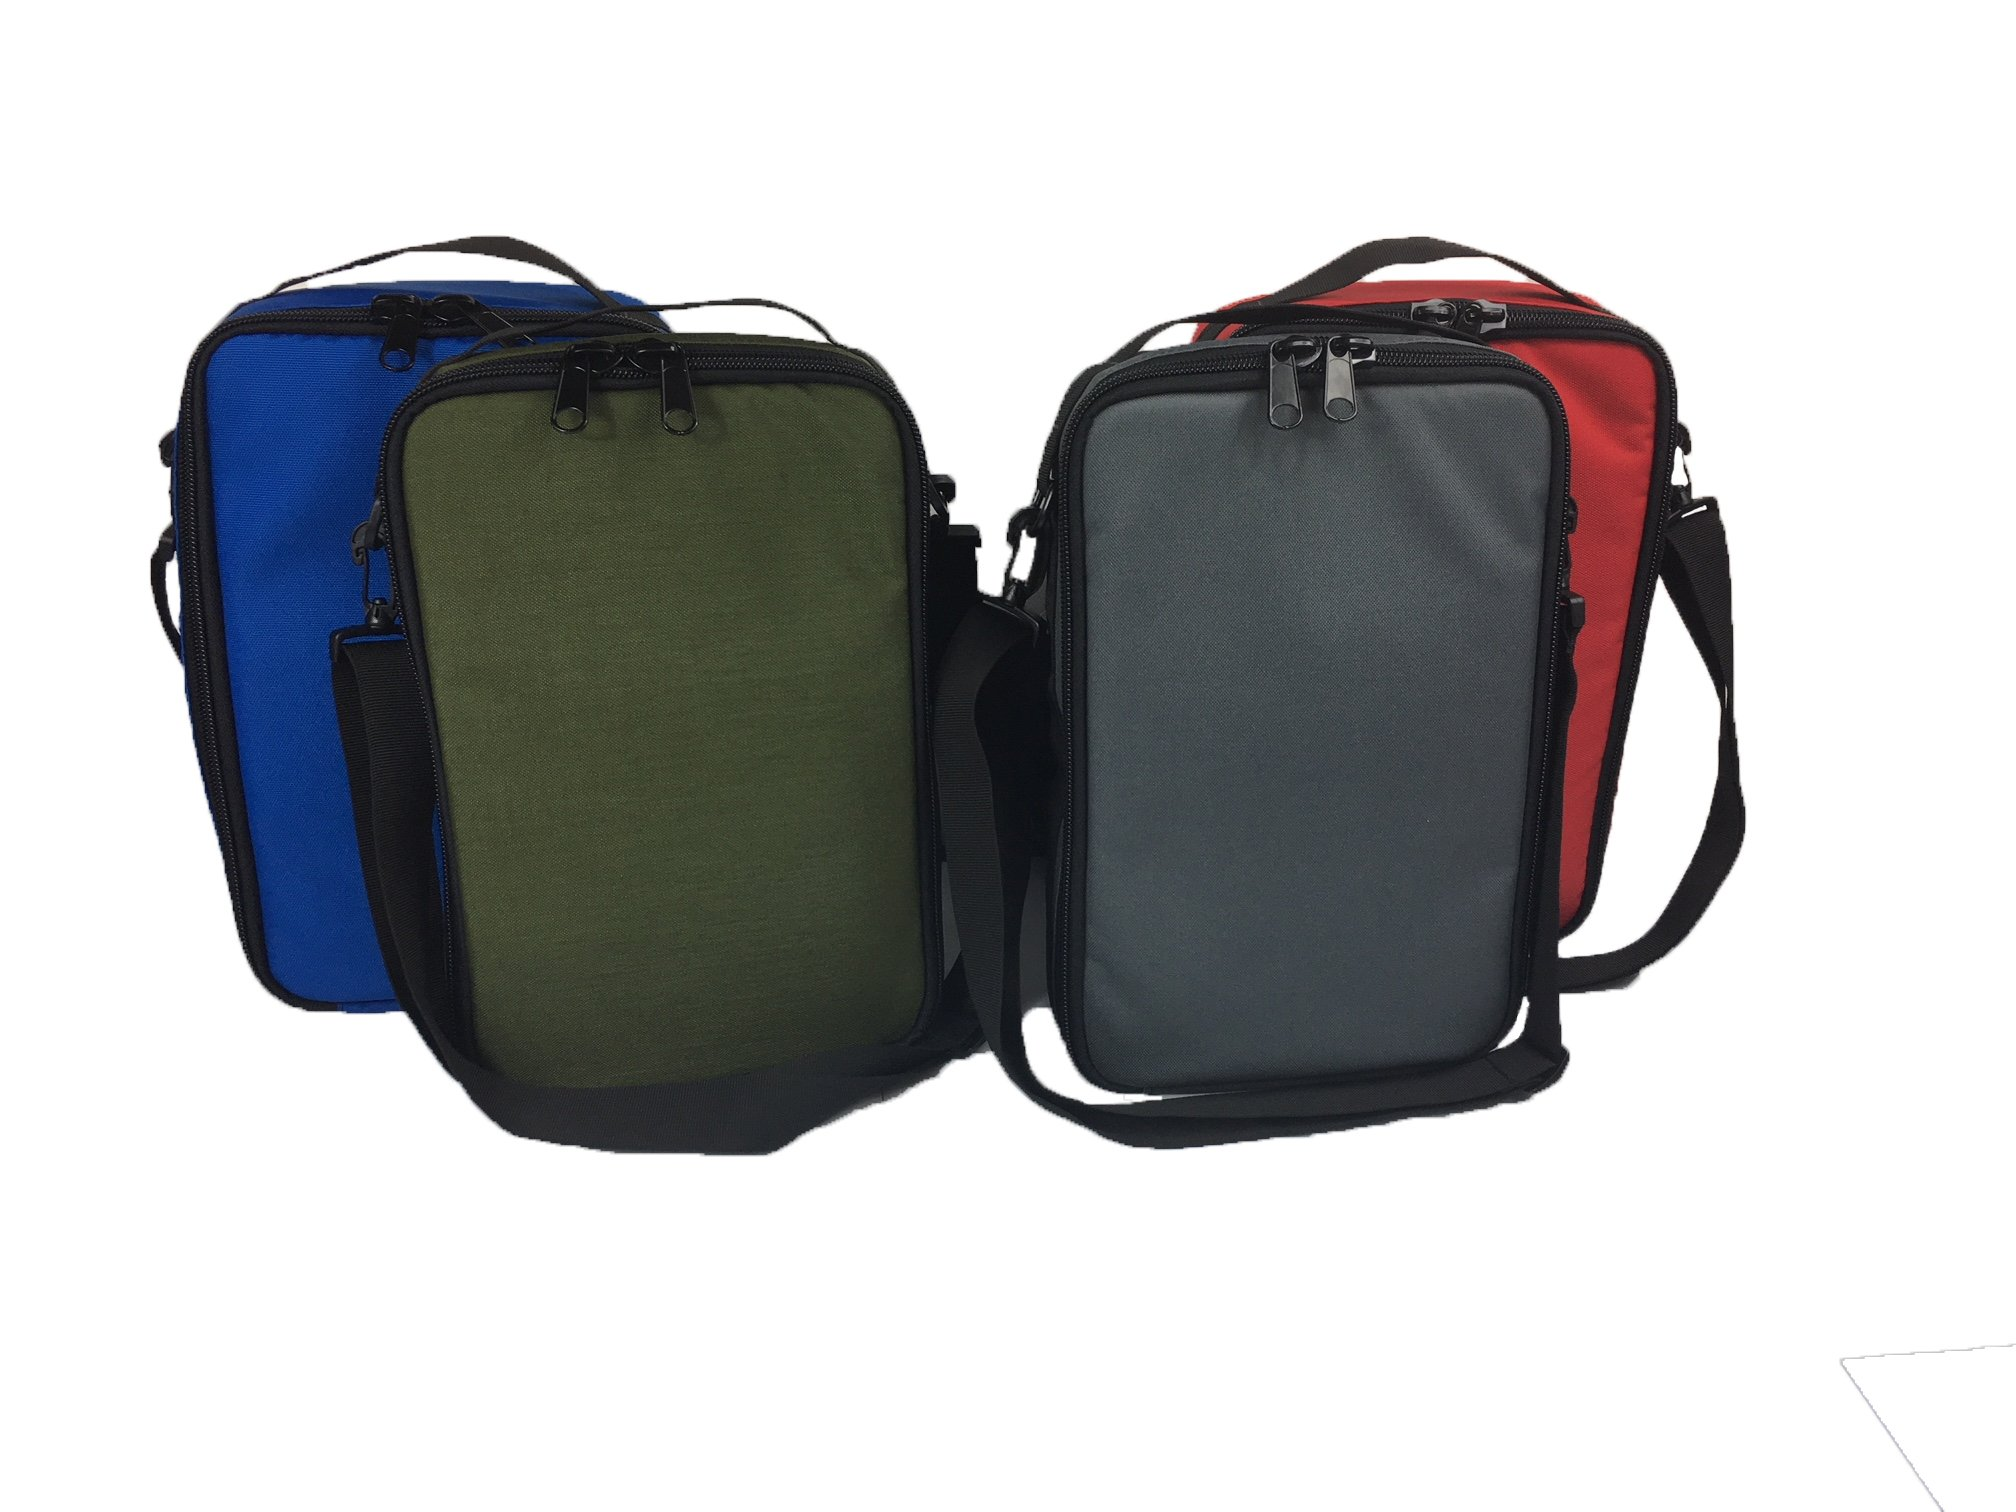 Set of 4 Tactical Organizer Bags with Shoulder Strap by Quik2U